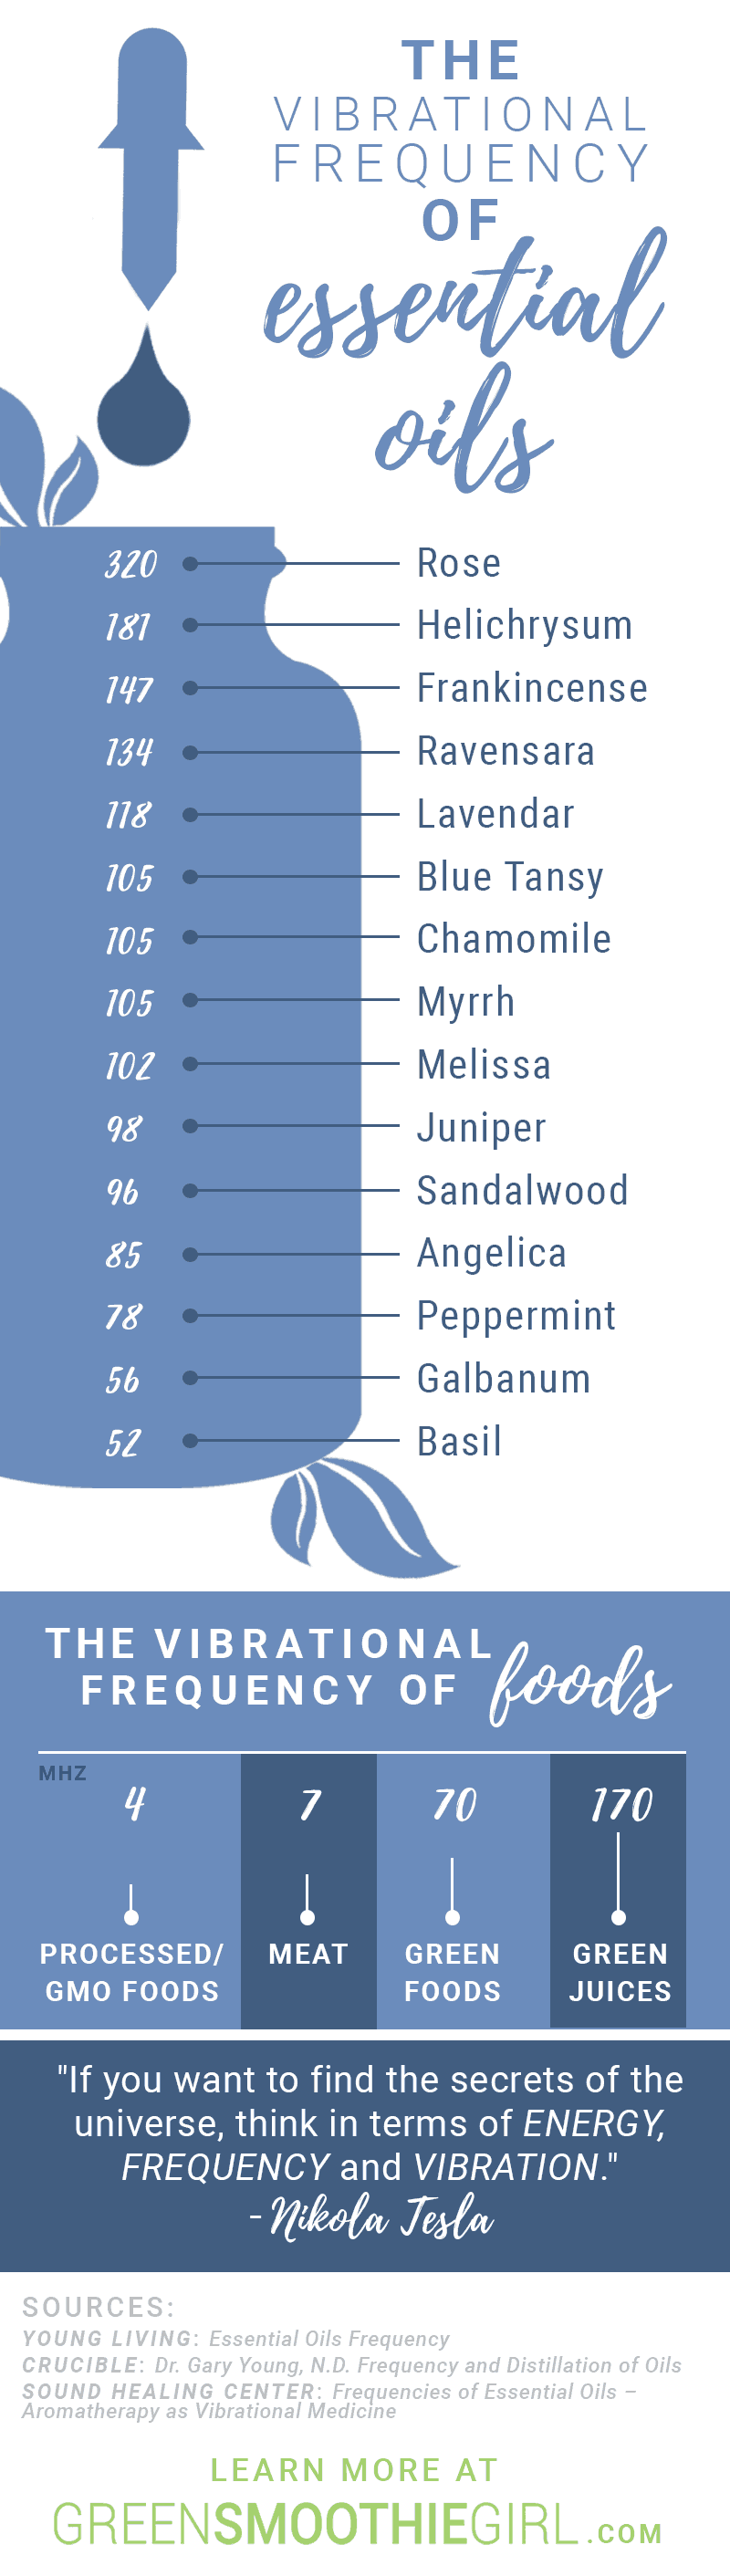 Infographic: The Vibrational Frequency of Essential Oils